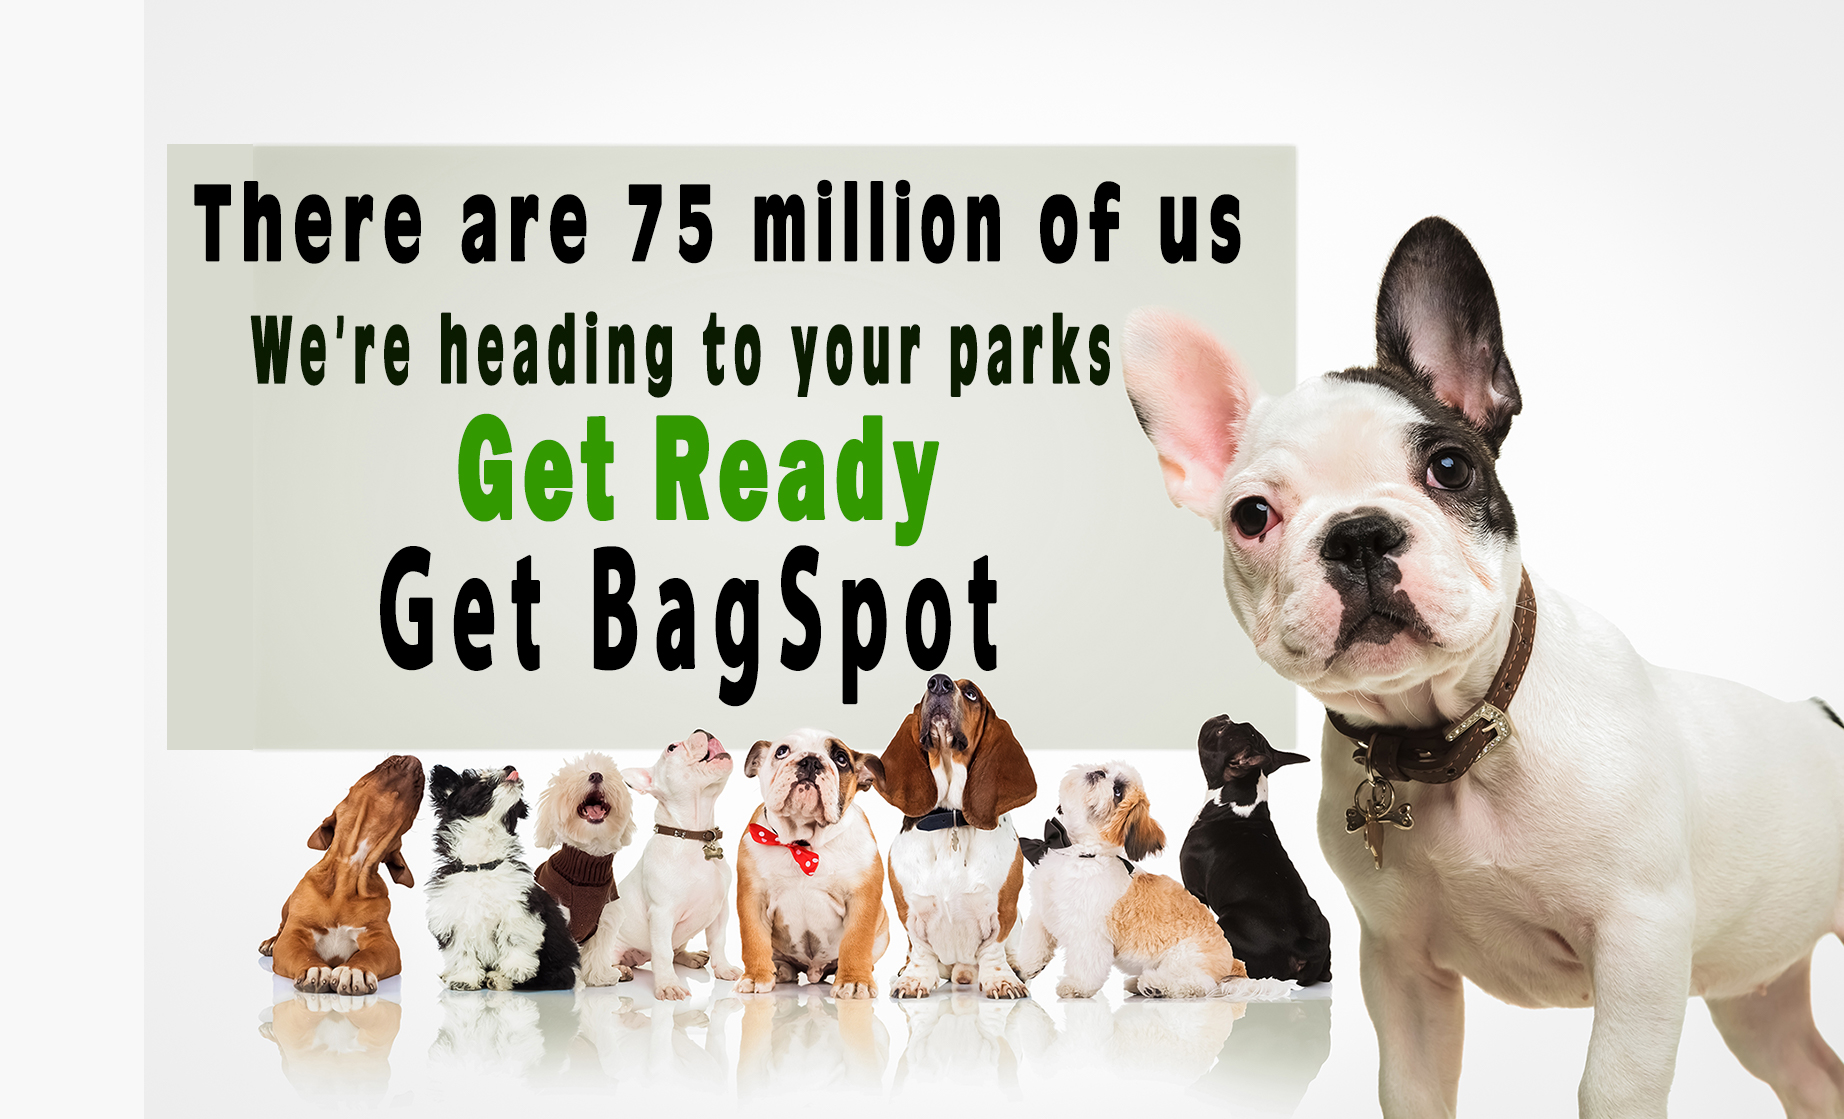 BagSpot Pet Waste Management Systems